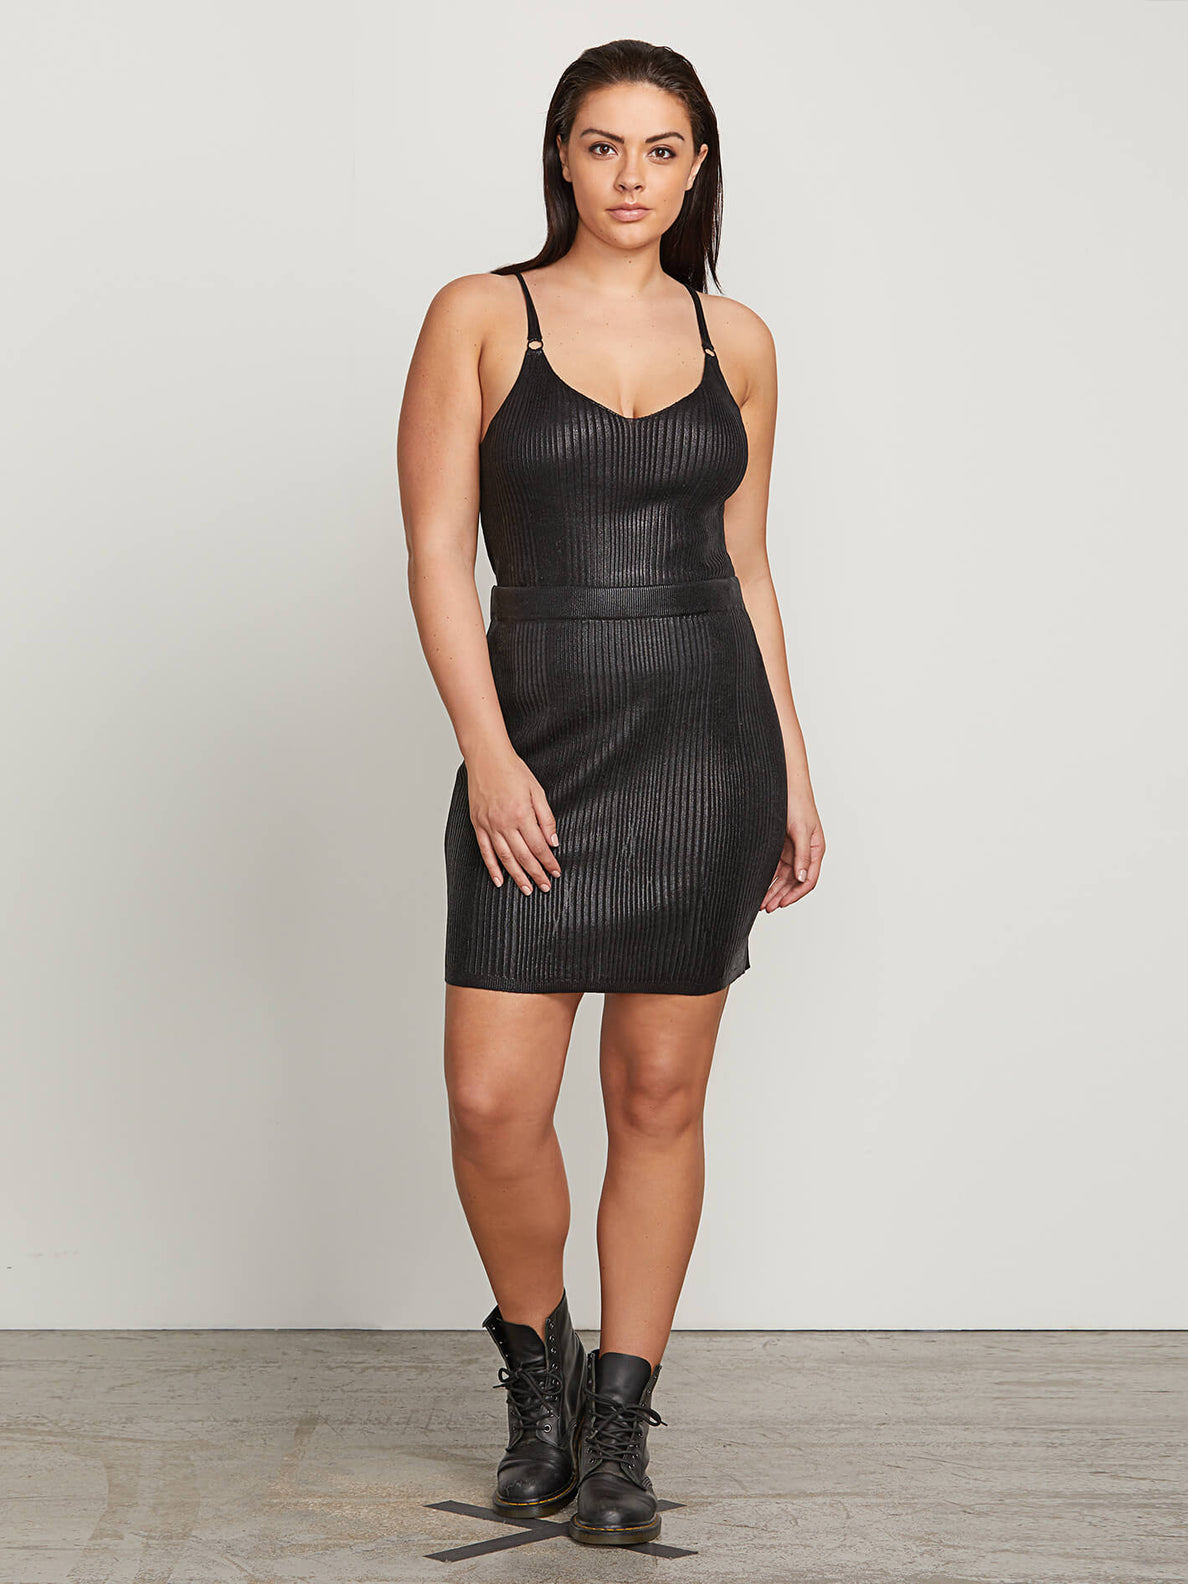 Hey Slick Skirt In Black, Front Extended Size View